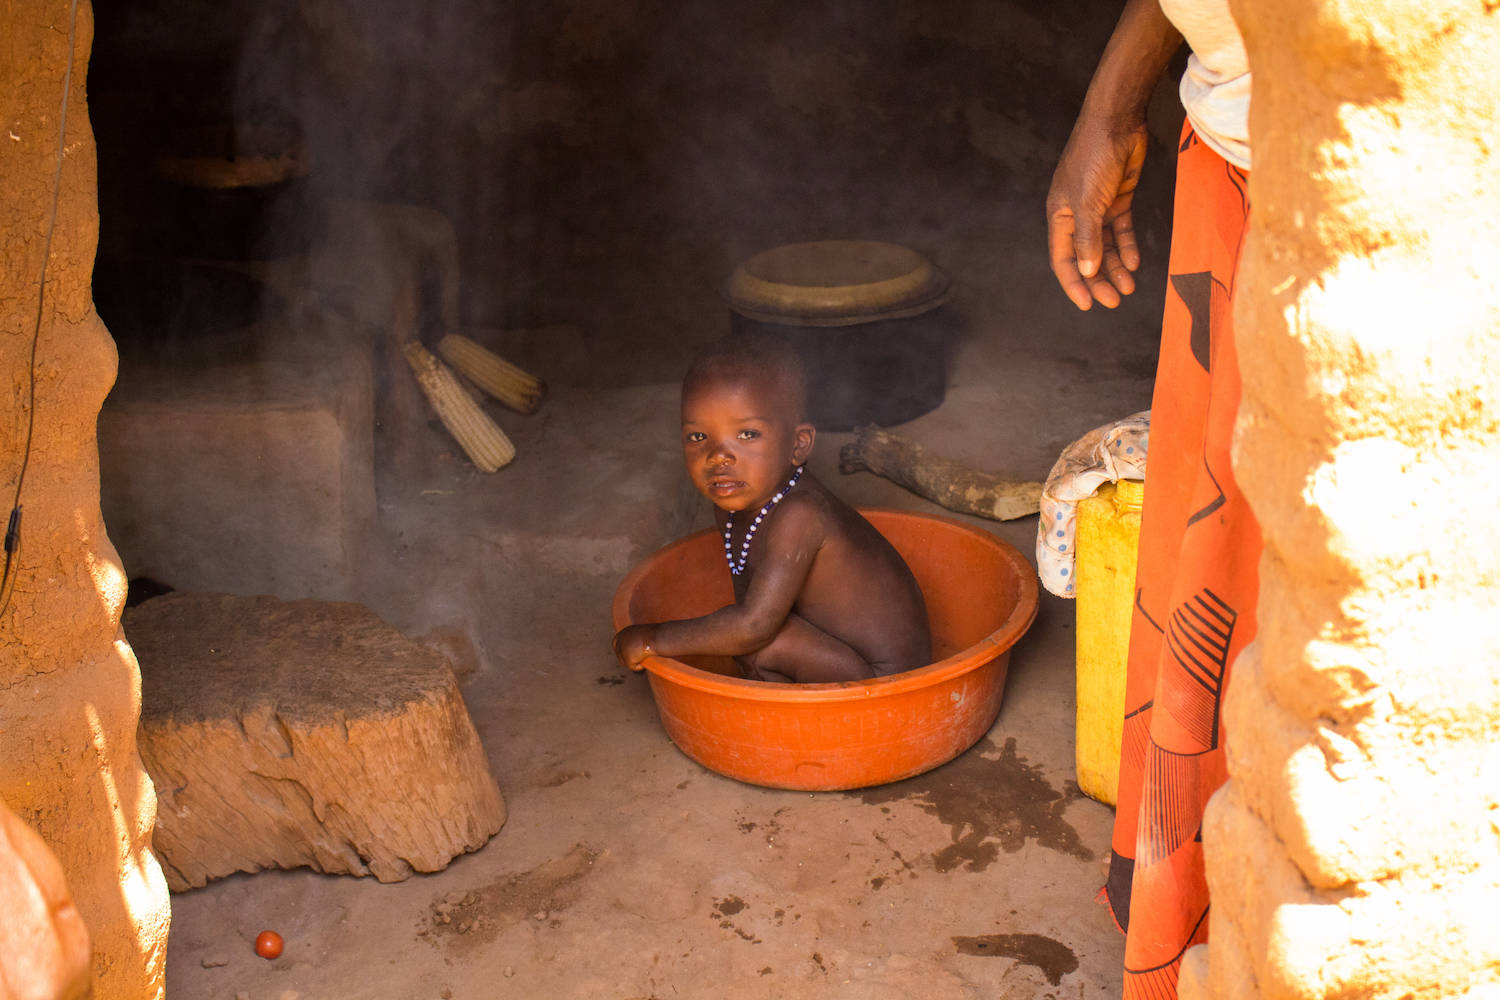 Young children are often in the kitchen with their mothers, since women spend many hours a day preparing food. Open-cooking fires are especially dangerous to children, since children can trip on logs, causing hot pots to spill on them, and smoke-inhalation can damage their lungs.